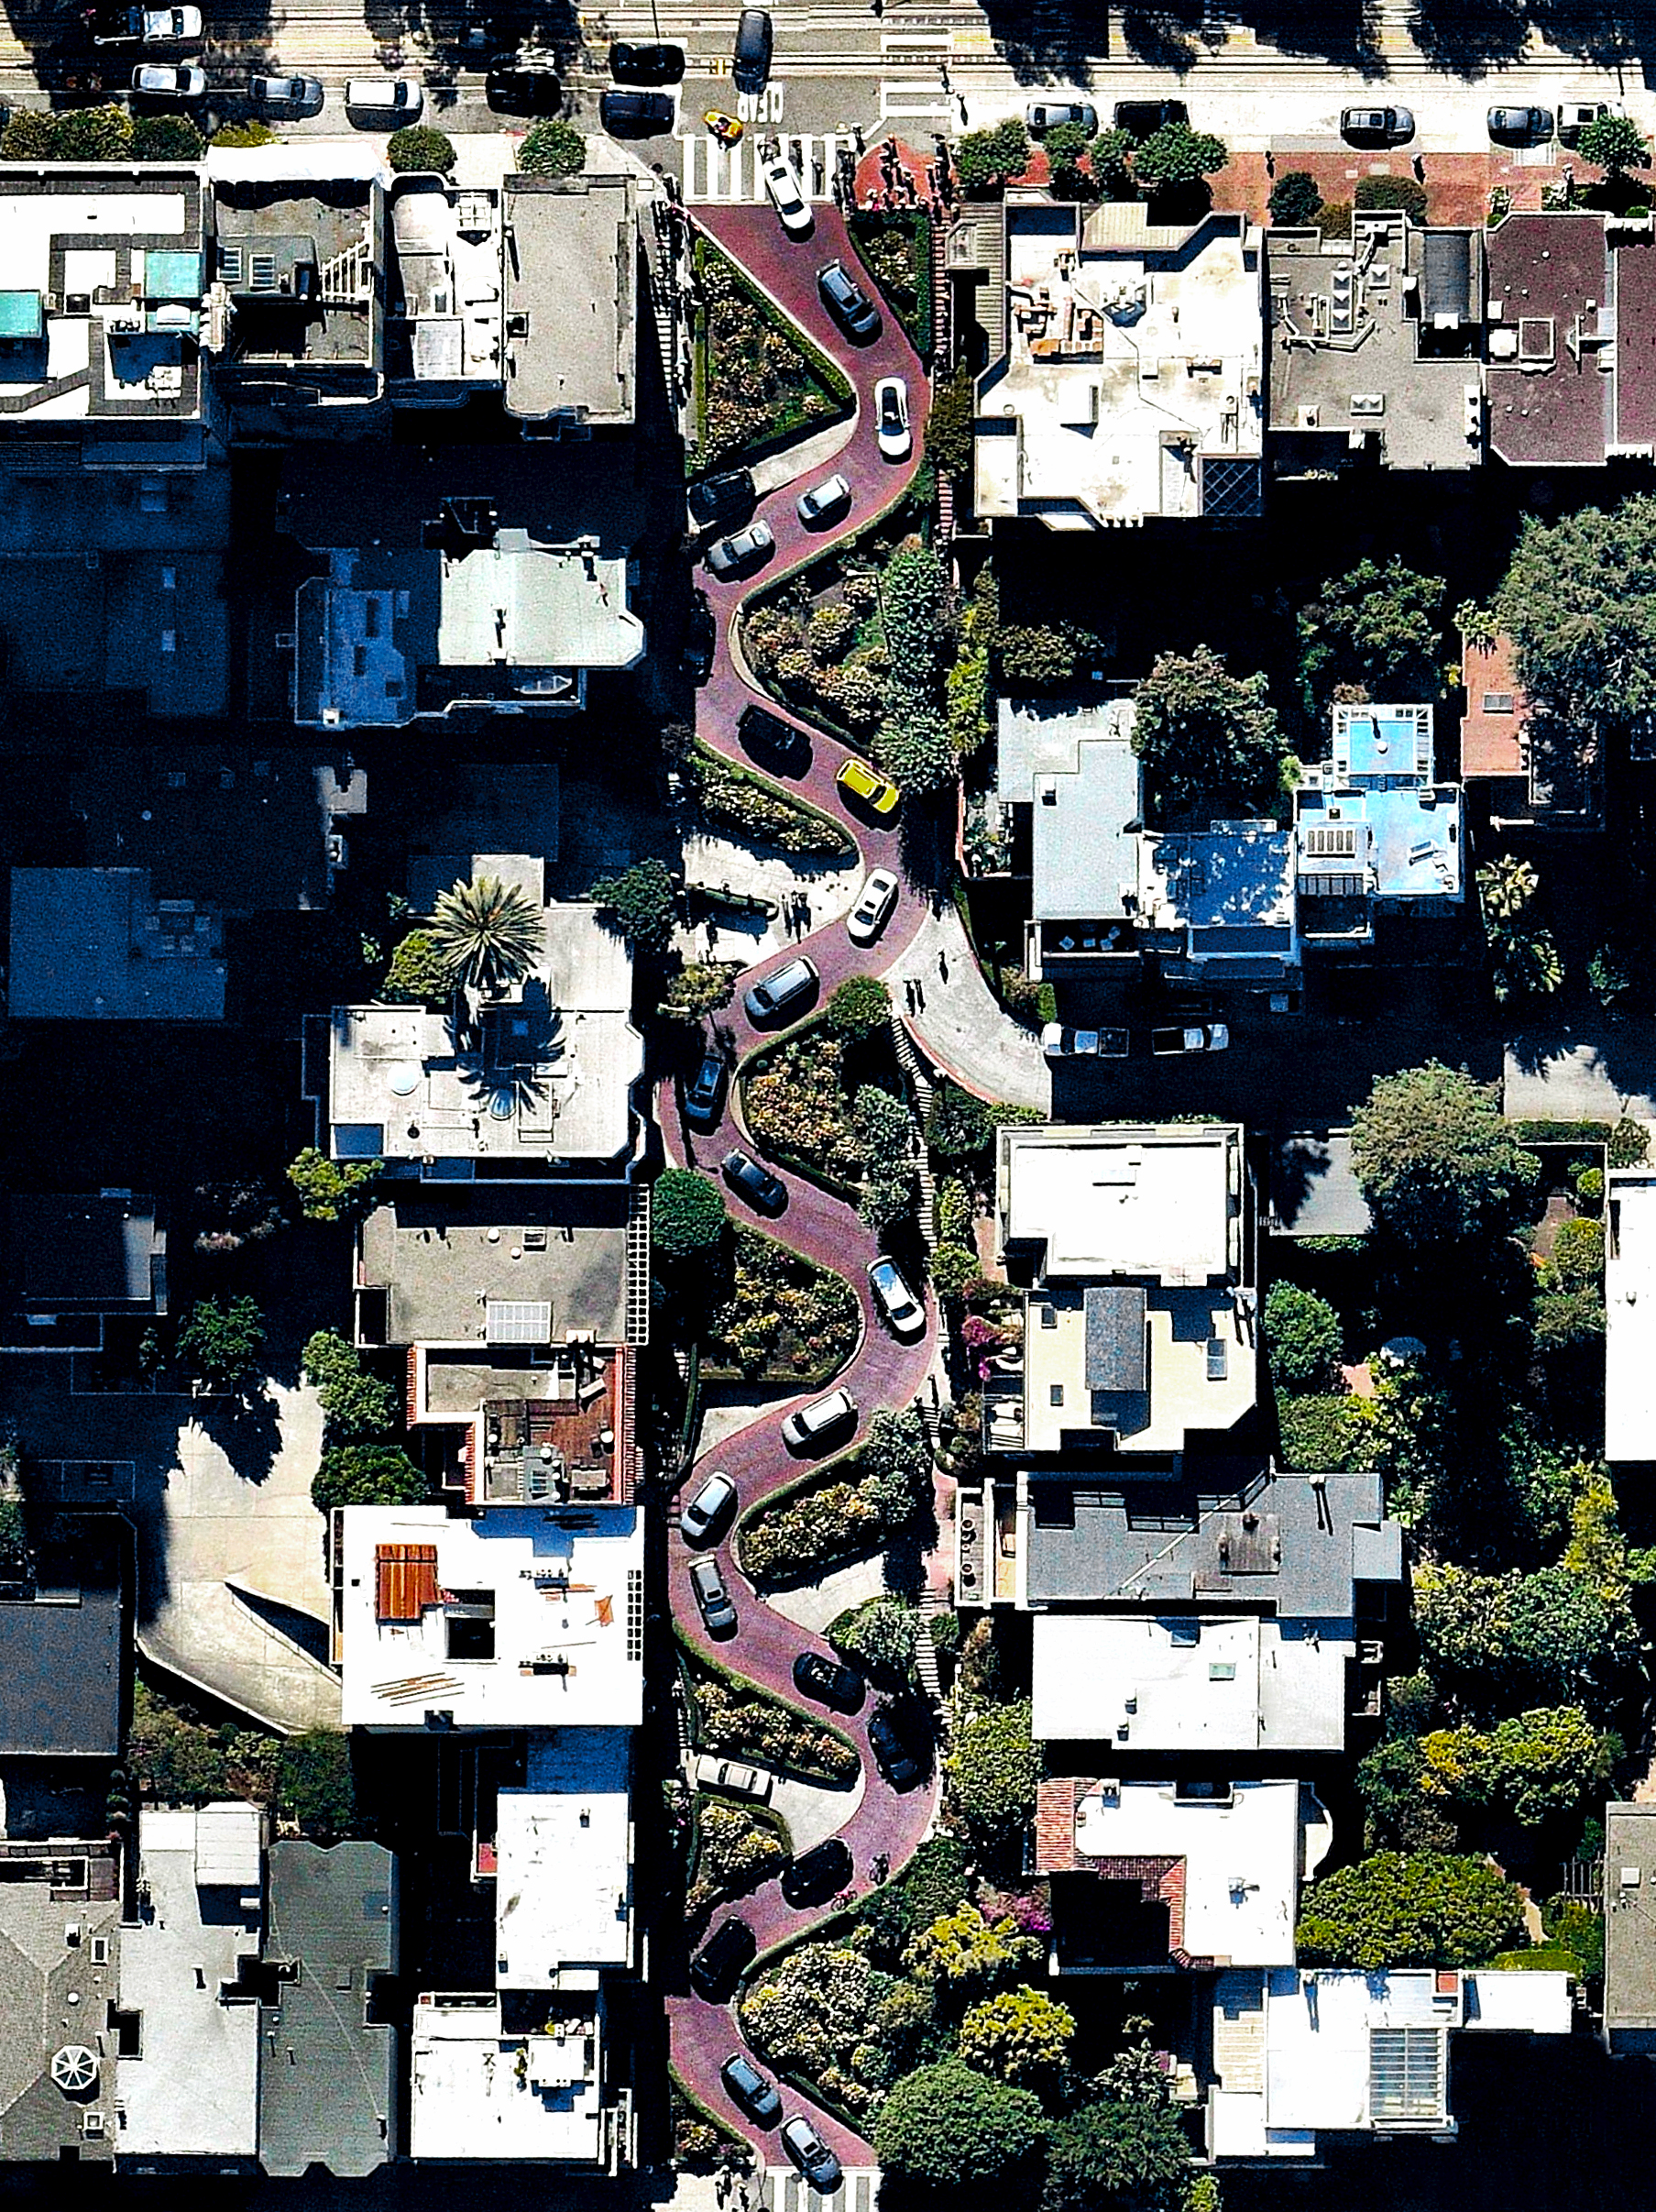 """Cars wind down the hill of Lombard Street, which runs from east to west in San Francisco, California. With eight hairpin turns dispersed over a one-block section in the Russian Hill neighborhood, Lombard is often referred to as """"the most crooked street in the world.""""  37°48'08.3""""N, 122°25'11.1""""W  Source imagery: Nearmap"""